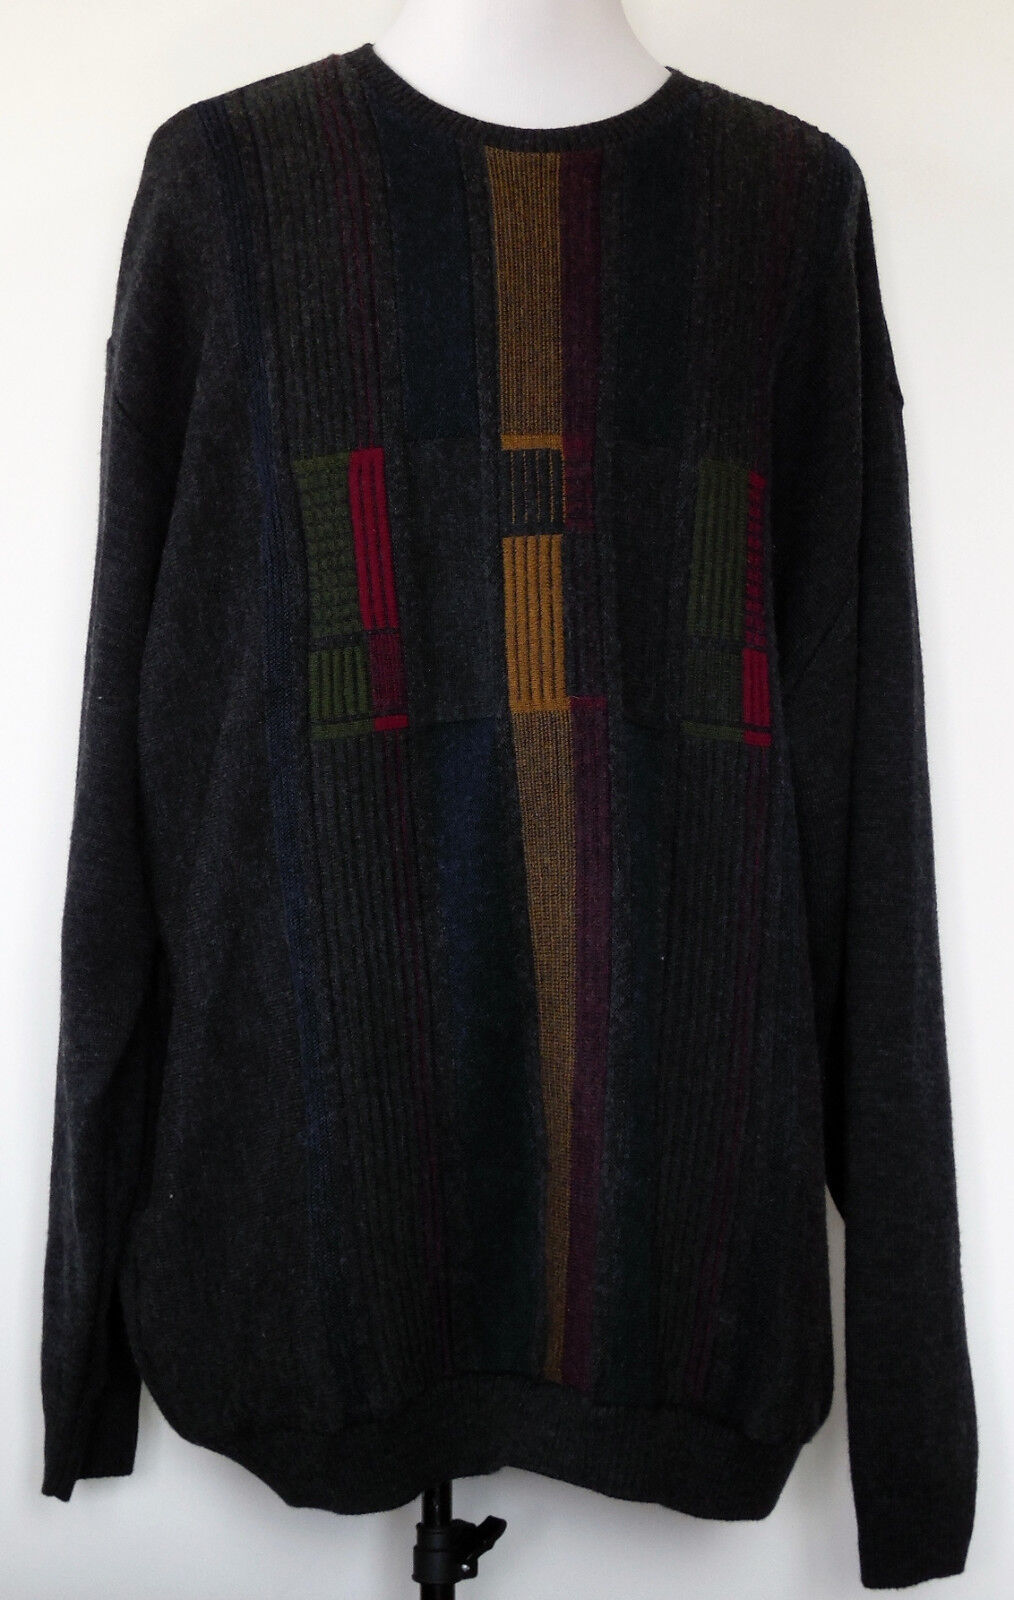 Tosani Canada Wool Blend Charcoal grau w/Multi-coloROT Front Design Sweater 4XLT